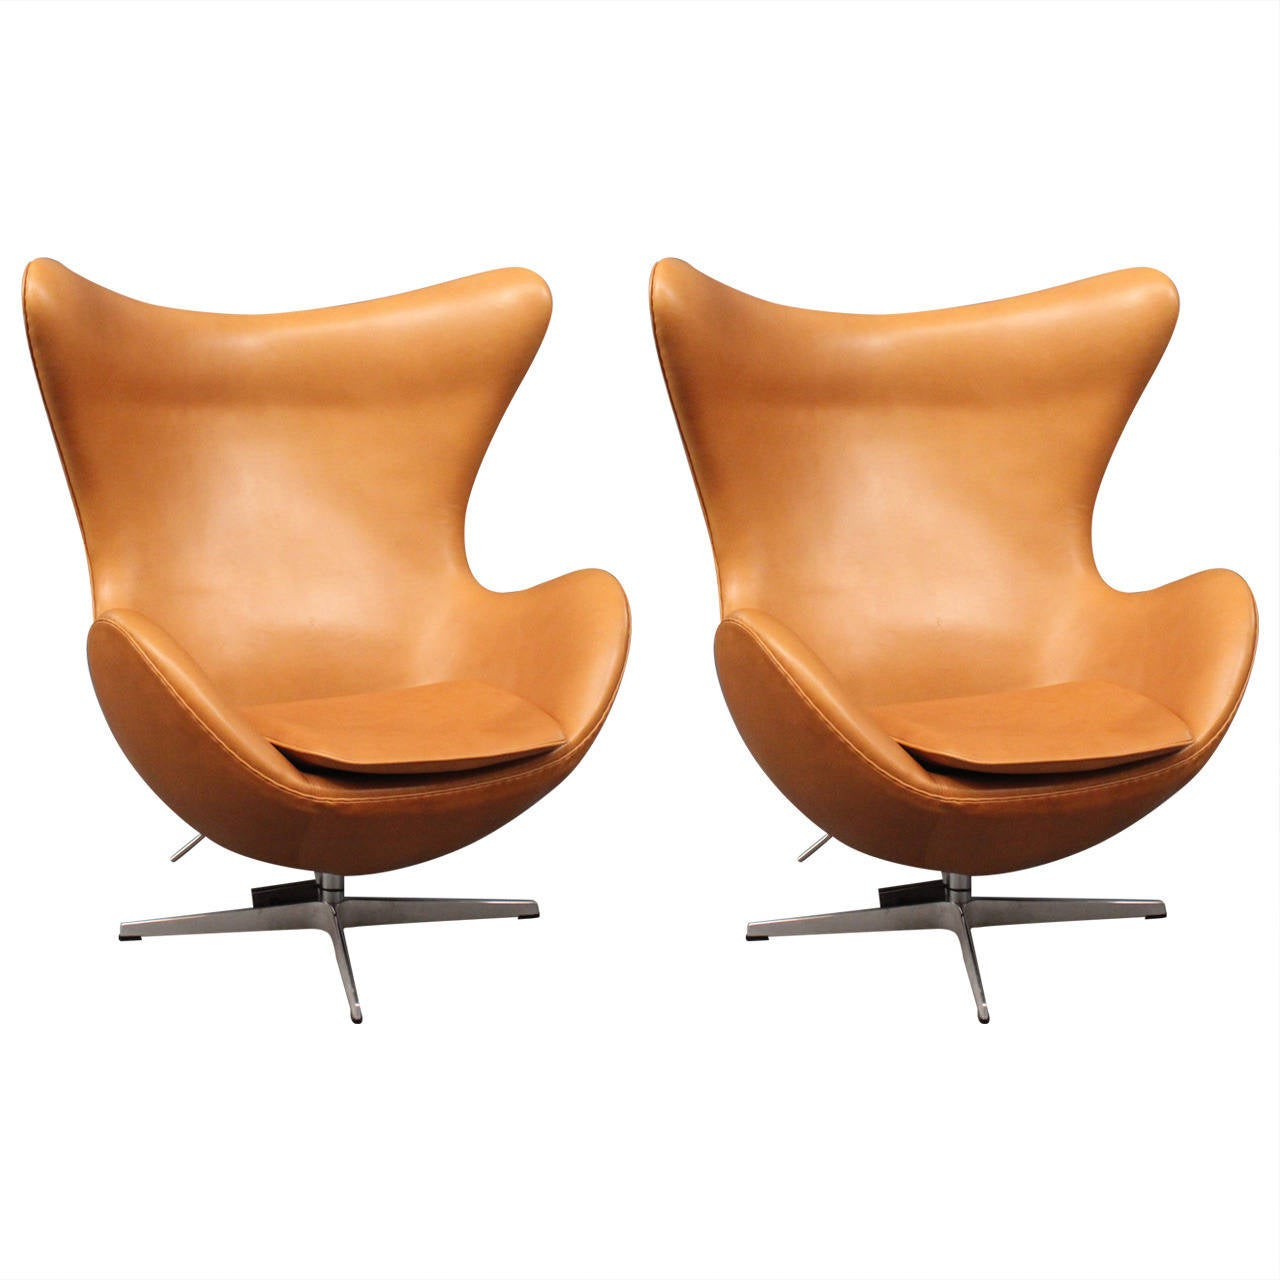 This arne jacobsen swan chair in cognac leather by fritz hansen is no -  Egg Chair Designed By Arne Jacobsen 1958 Manufactured By Fritz Hansen 1